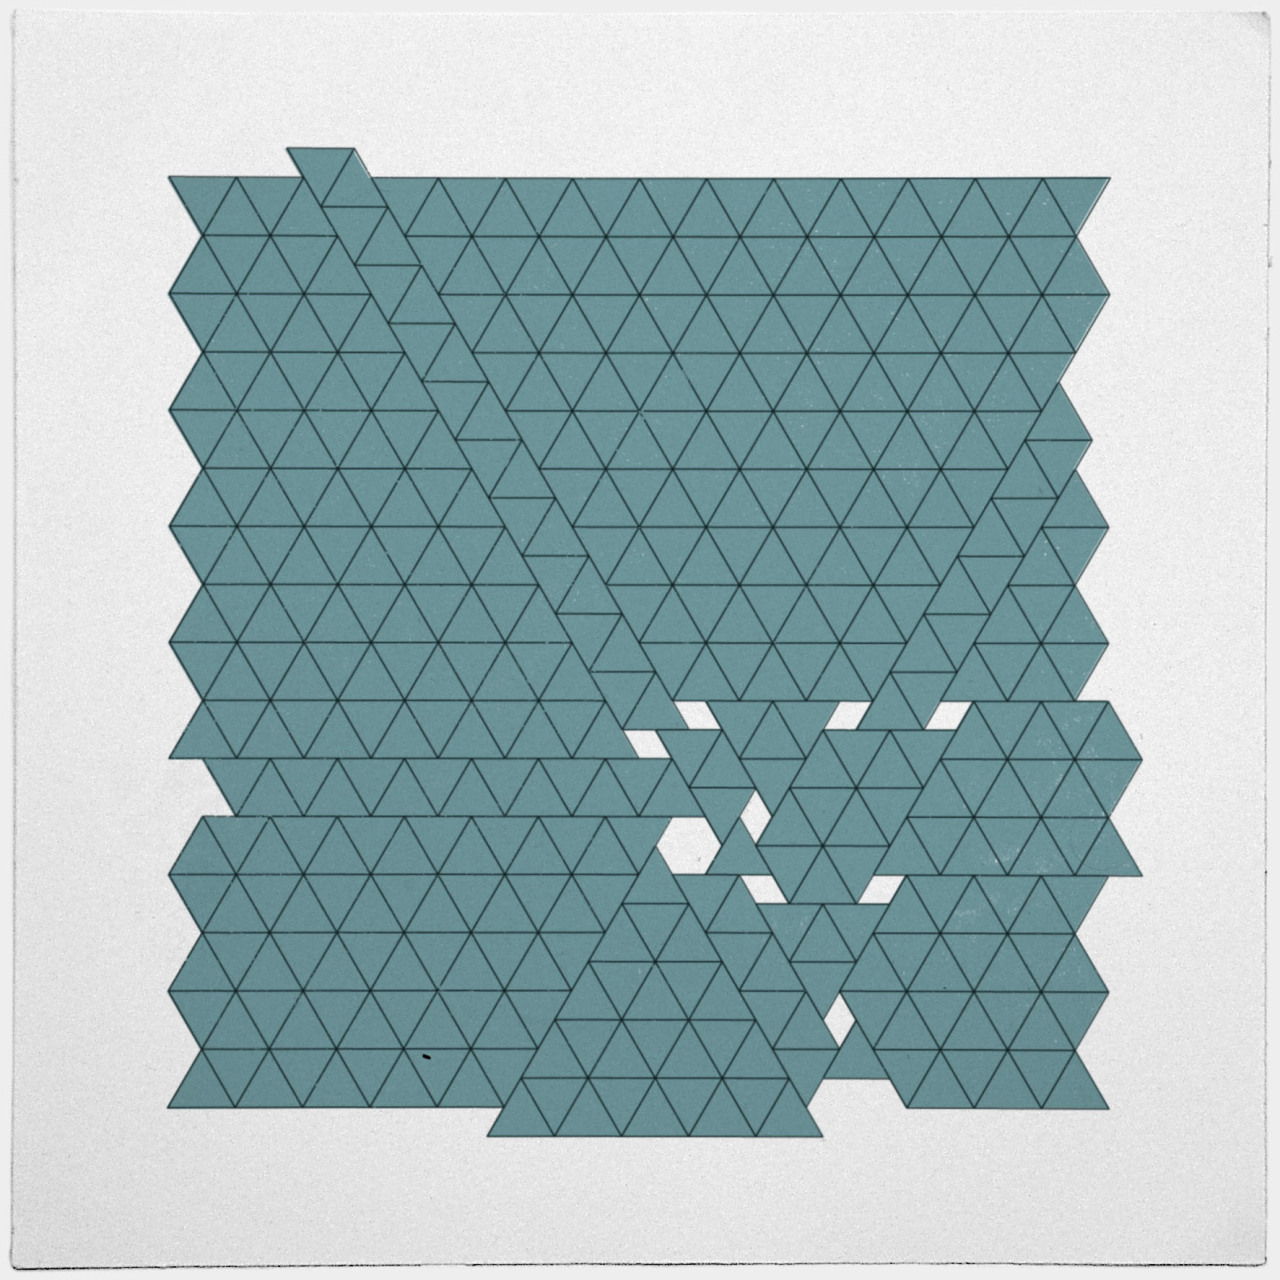 geometrydaily:  #426 Tectonic activity – A new minimal geometric composition each day